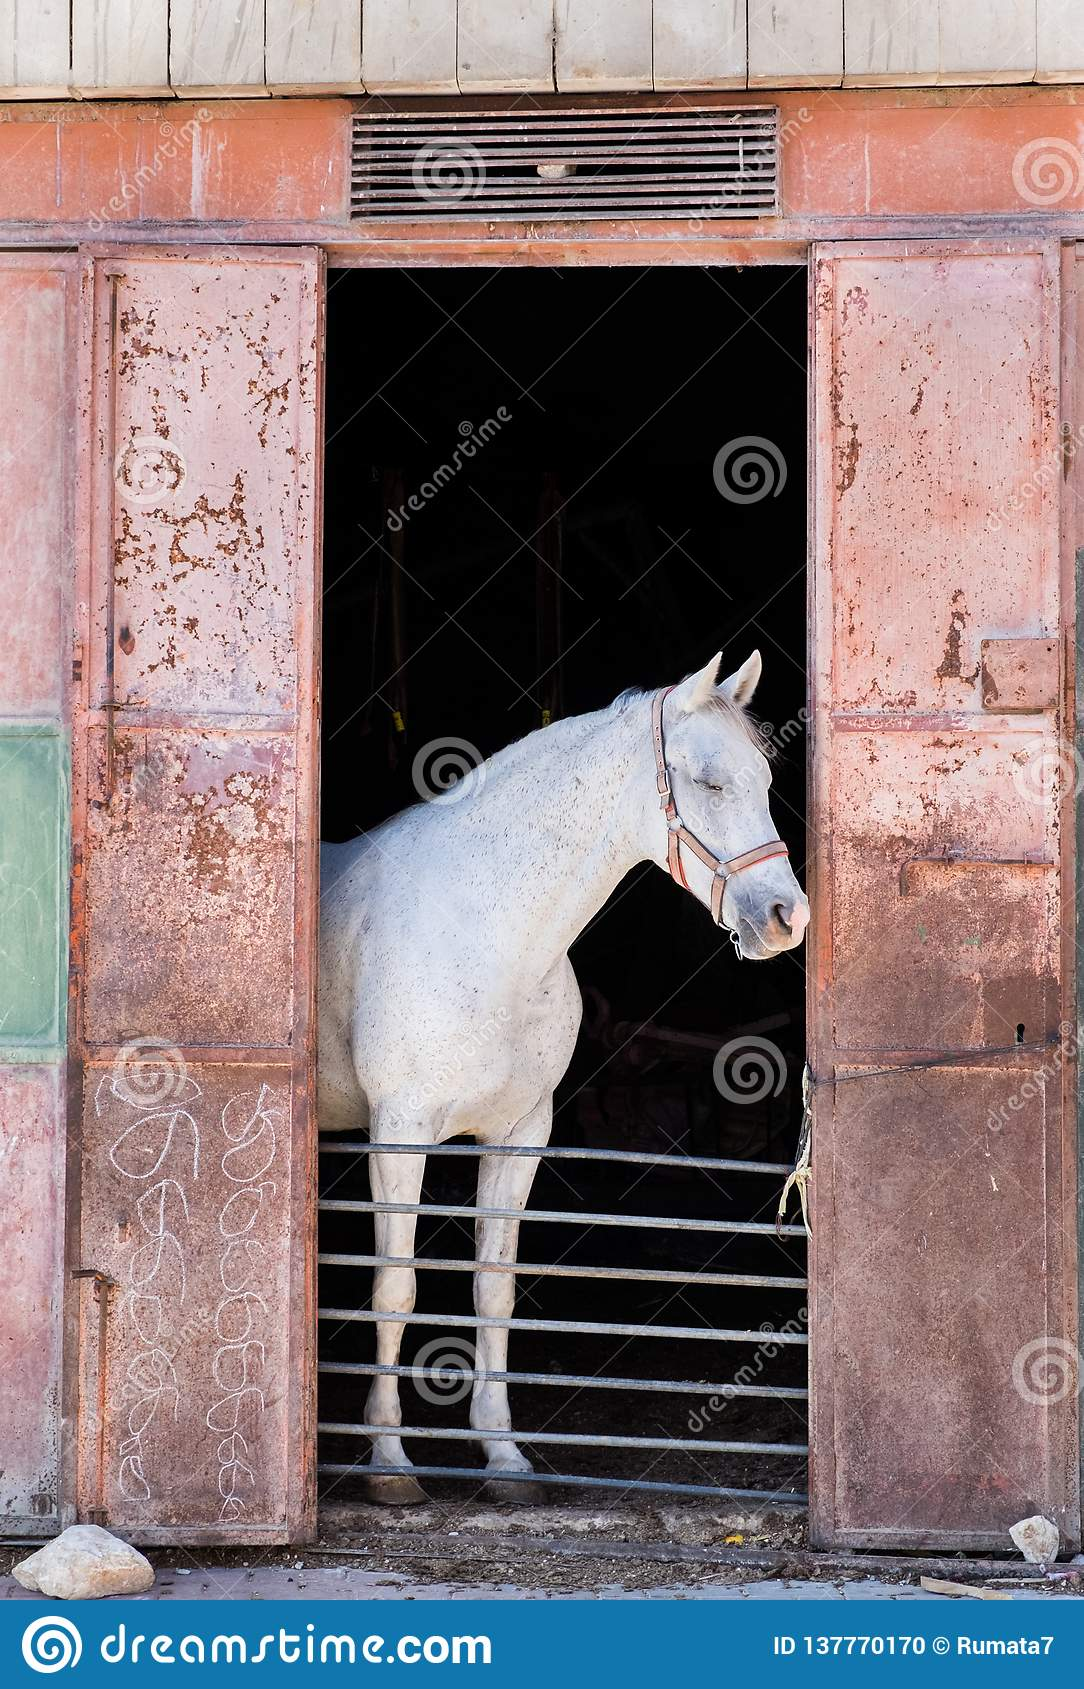 White Horse Looking Outside From Horse Stable Stock Photo Image Of Nature Mammal 137770170